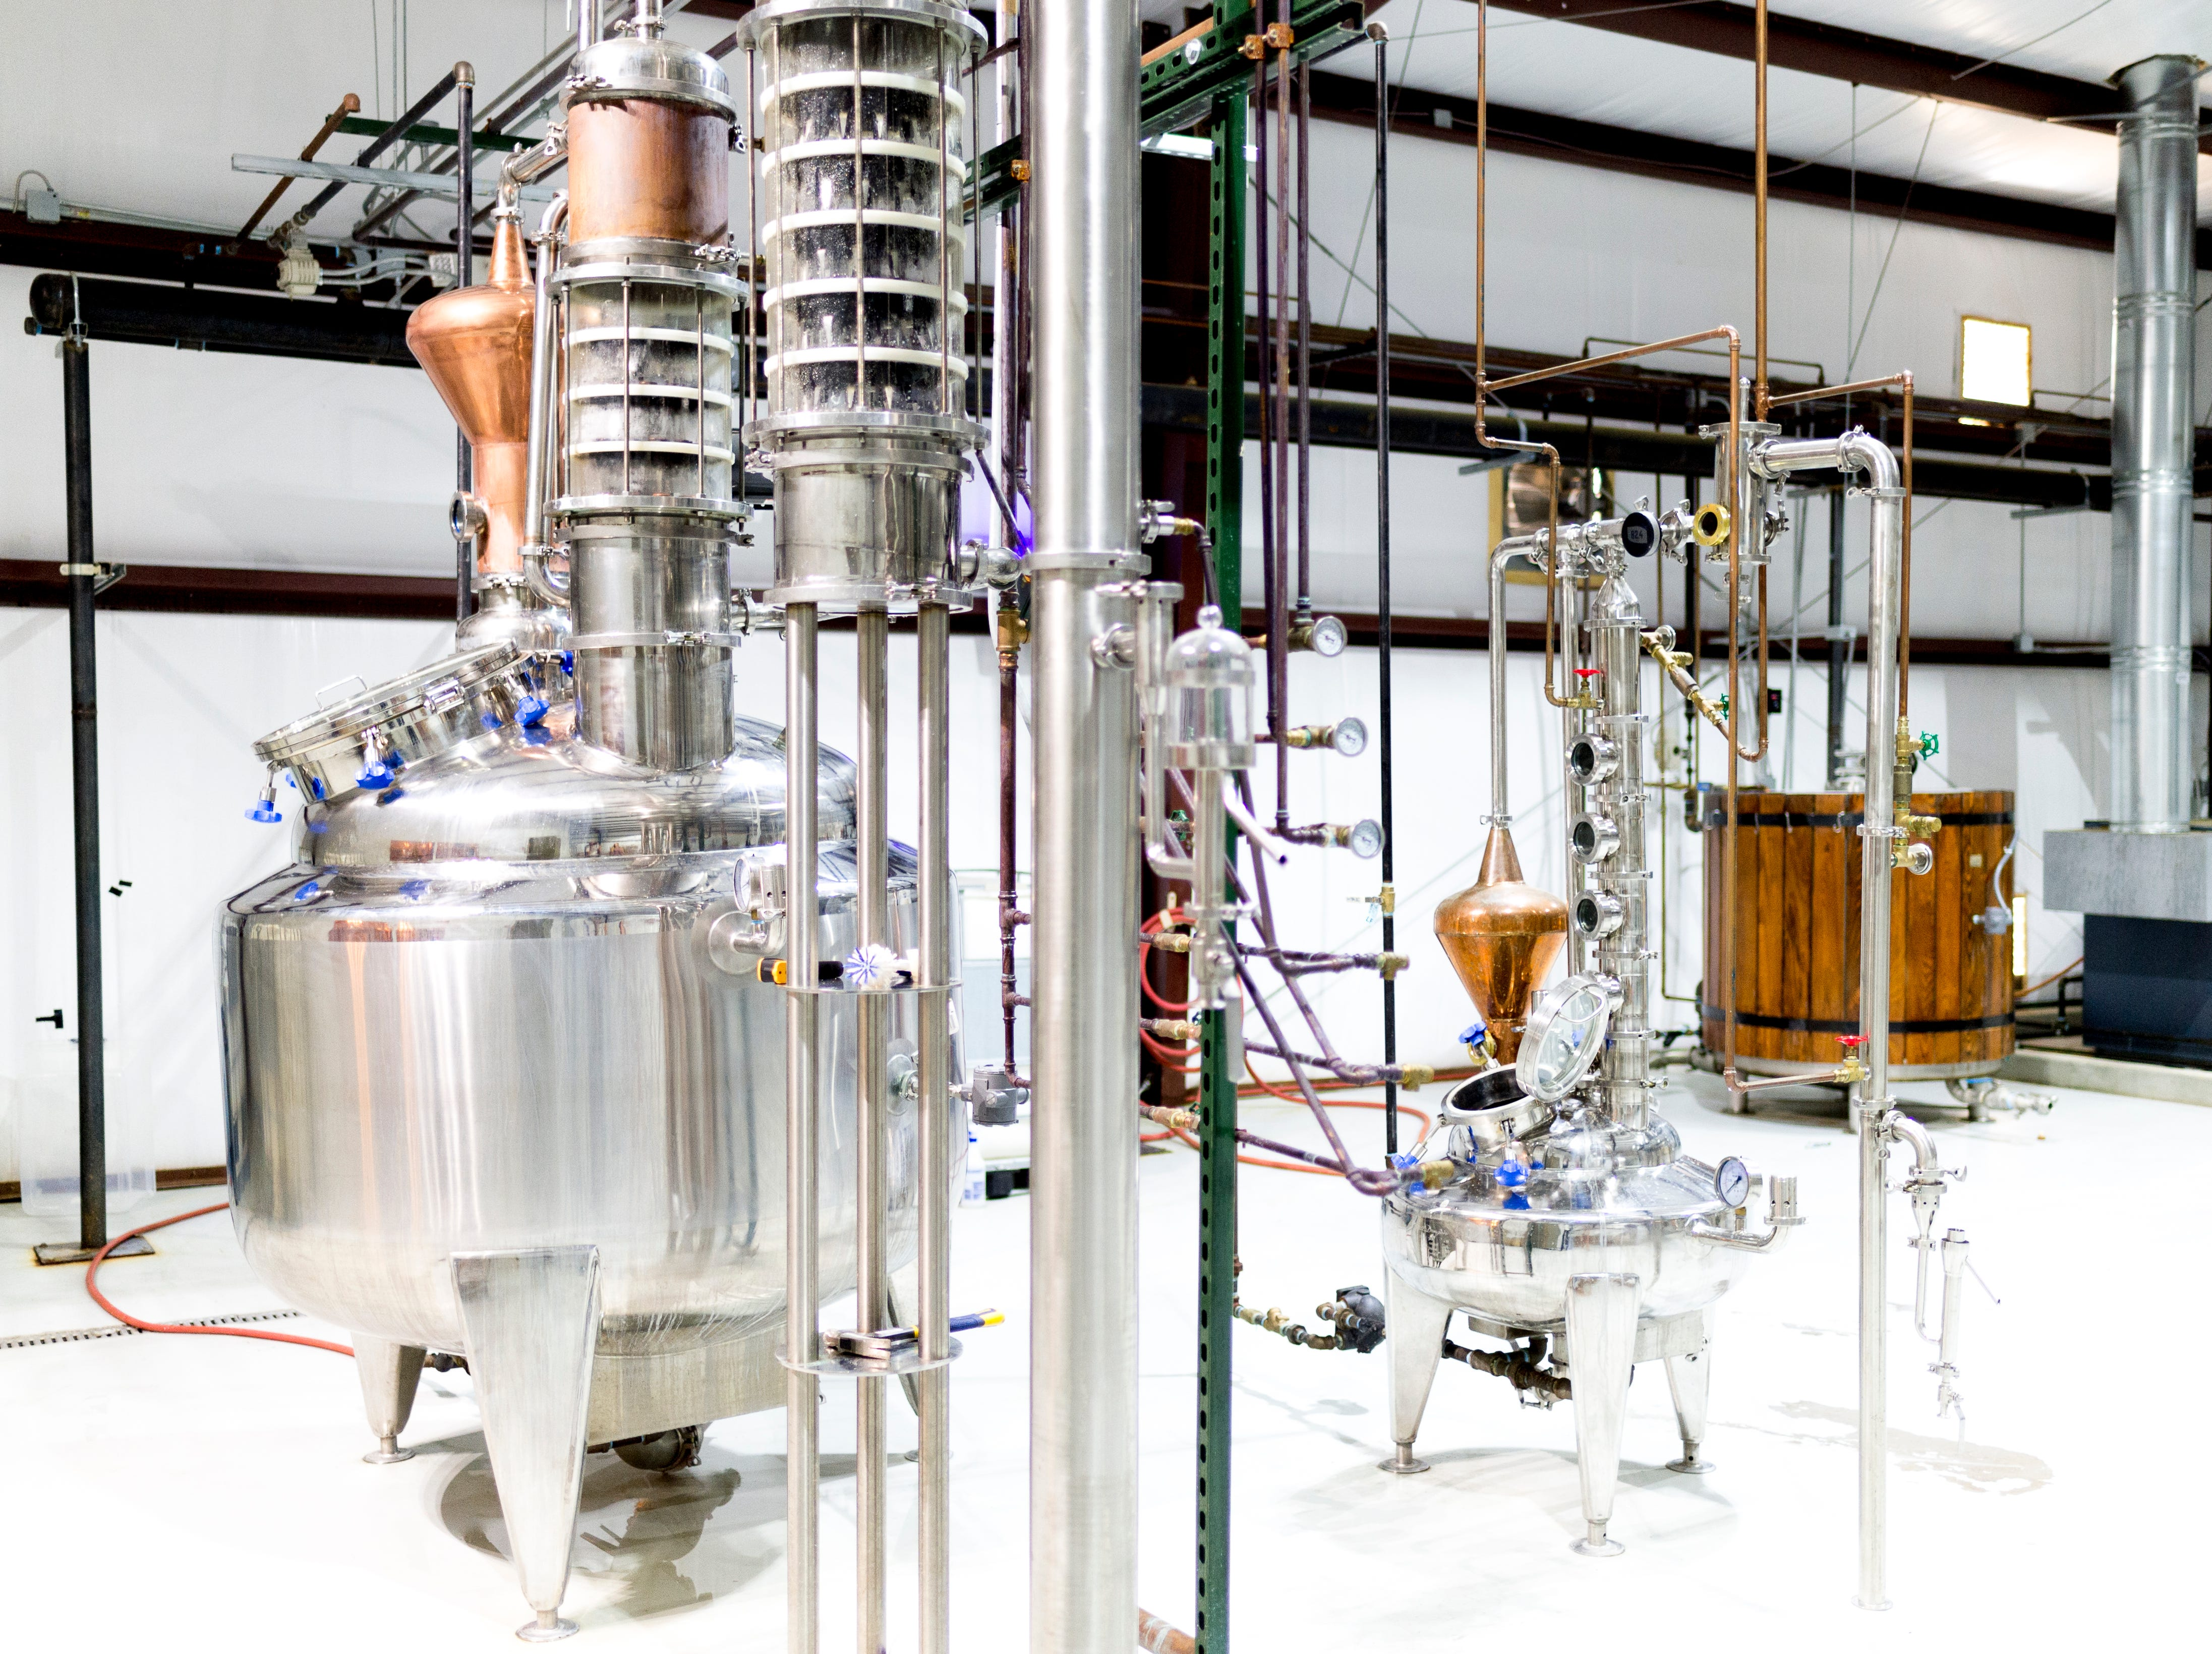 The still inside D&S Distilling on 1610 Jenkins Rd. in Sevierville, Tennessee on Tuesday, October 9, 2018. D&S Distilling is TennesseeÕs first completely organic and gluten-free distillery.